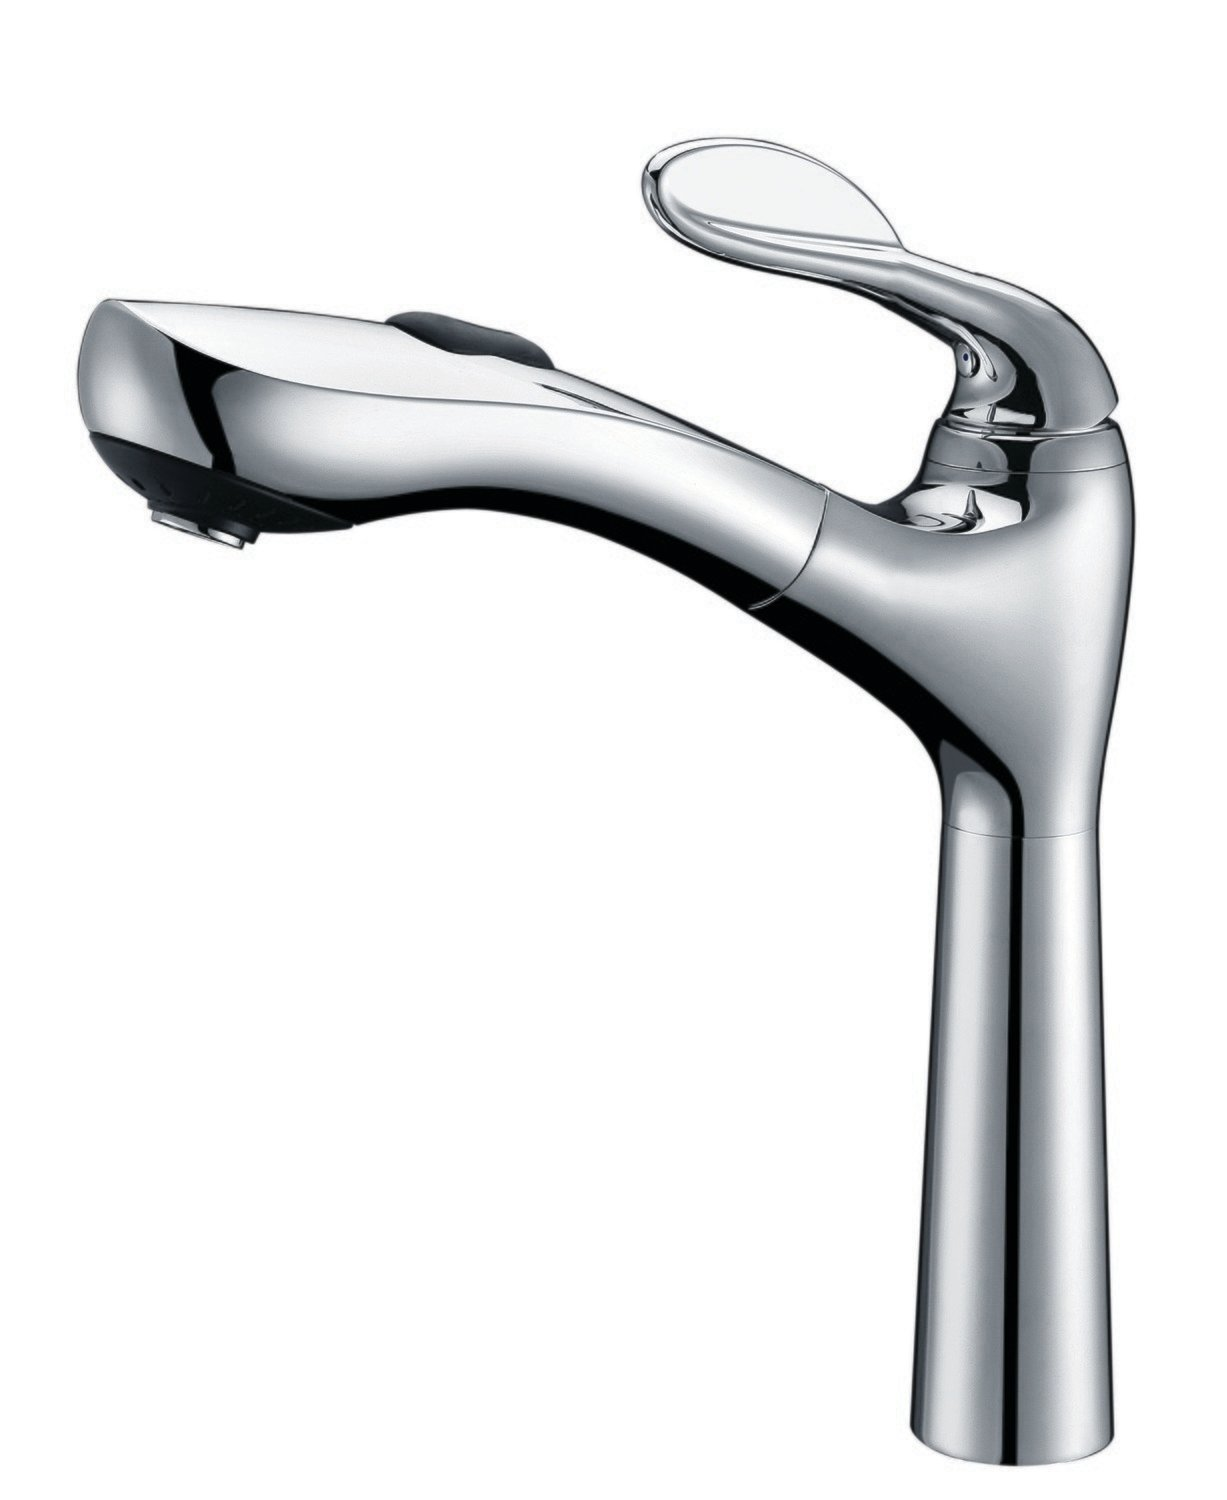 Single-handle pull-out kitchen faucet